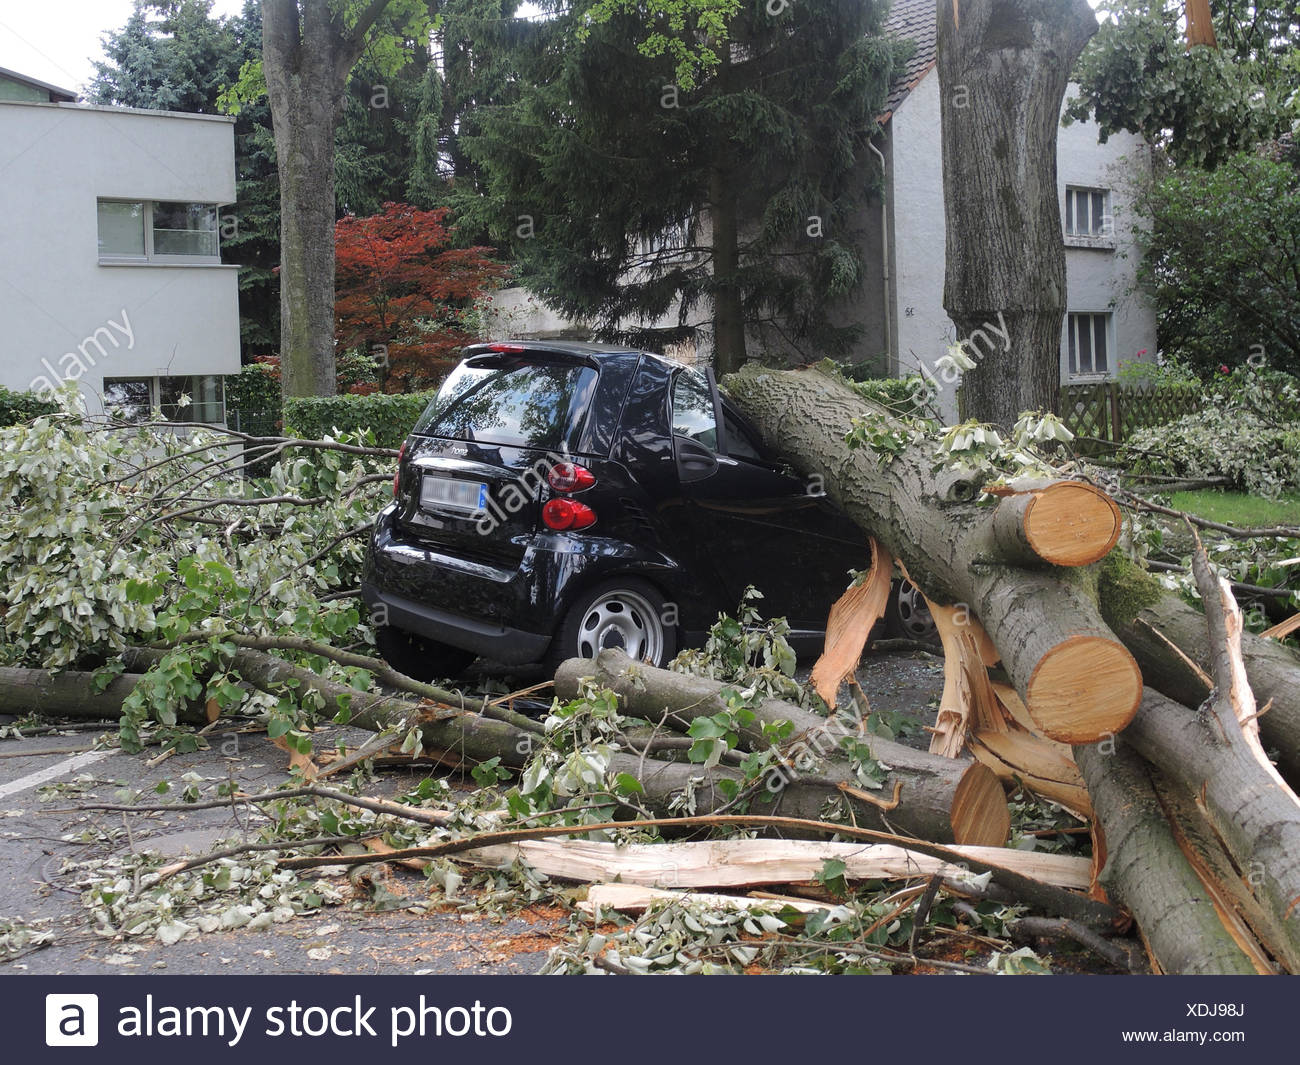 tree fallen on parked car, damages by storm front Ela at 2014-06-09, Germany, North Rhine-Westphalia, Ruhr Area, Bochum Stock Photo